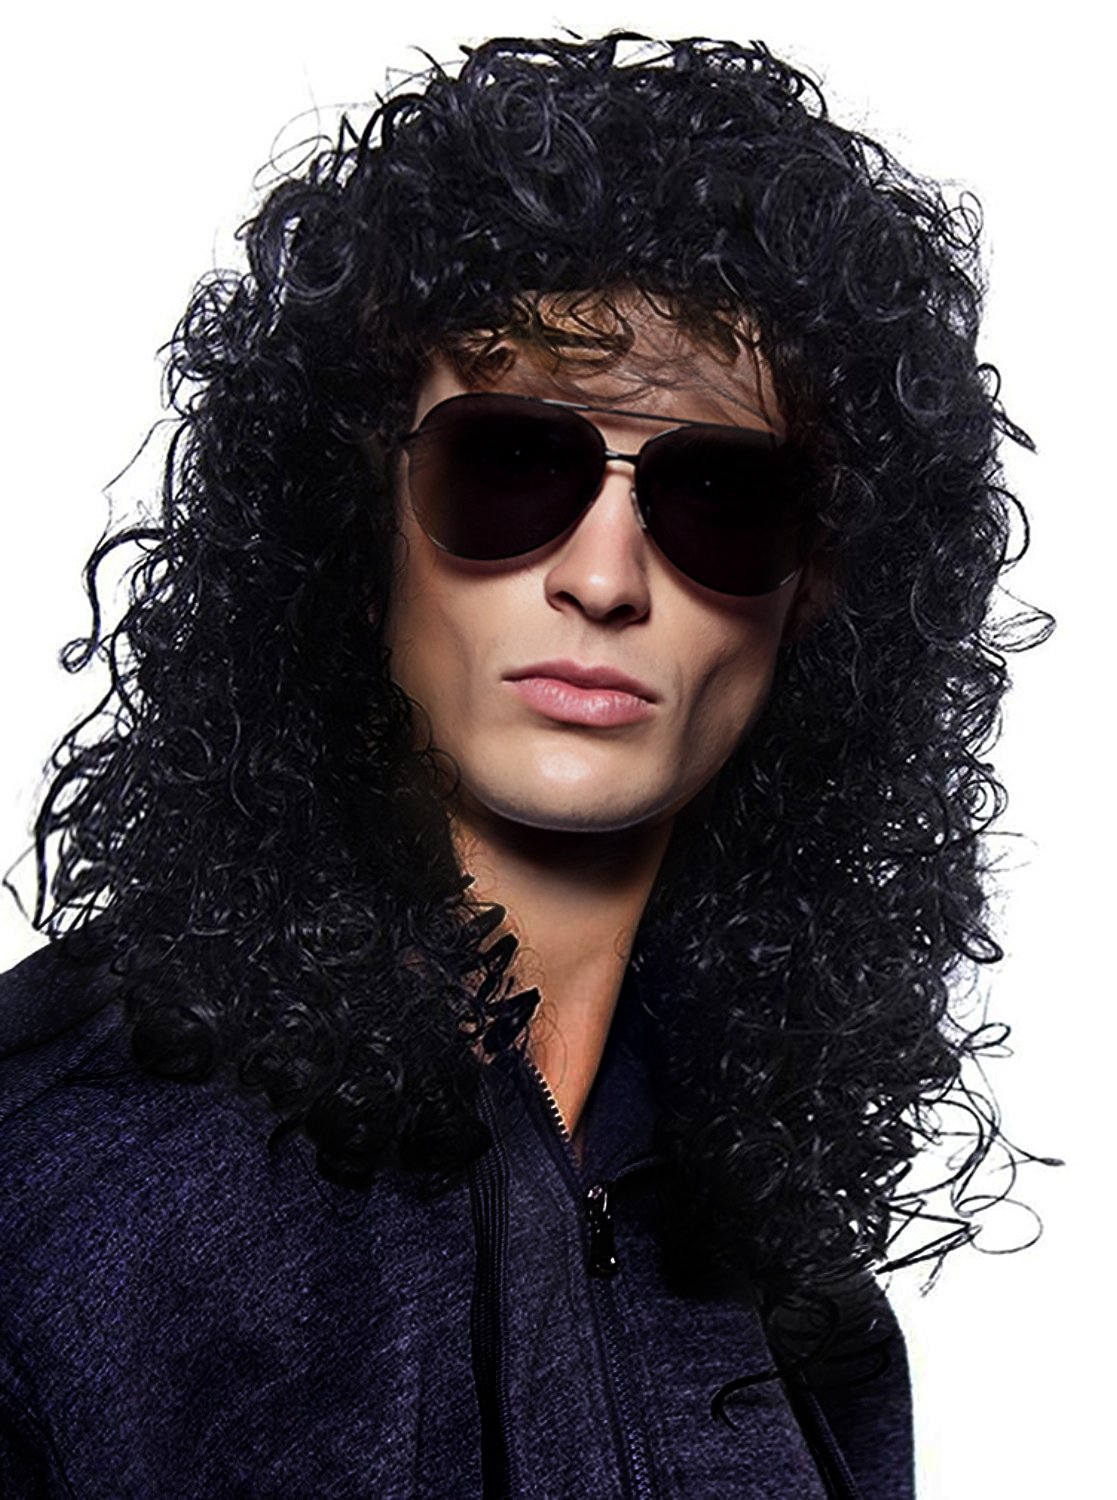 YoungLove Men's Costume Hair Accessory Heavy Metal Rocker Cosplay Long Curly Black Wig